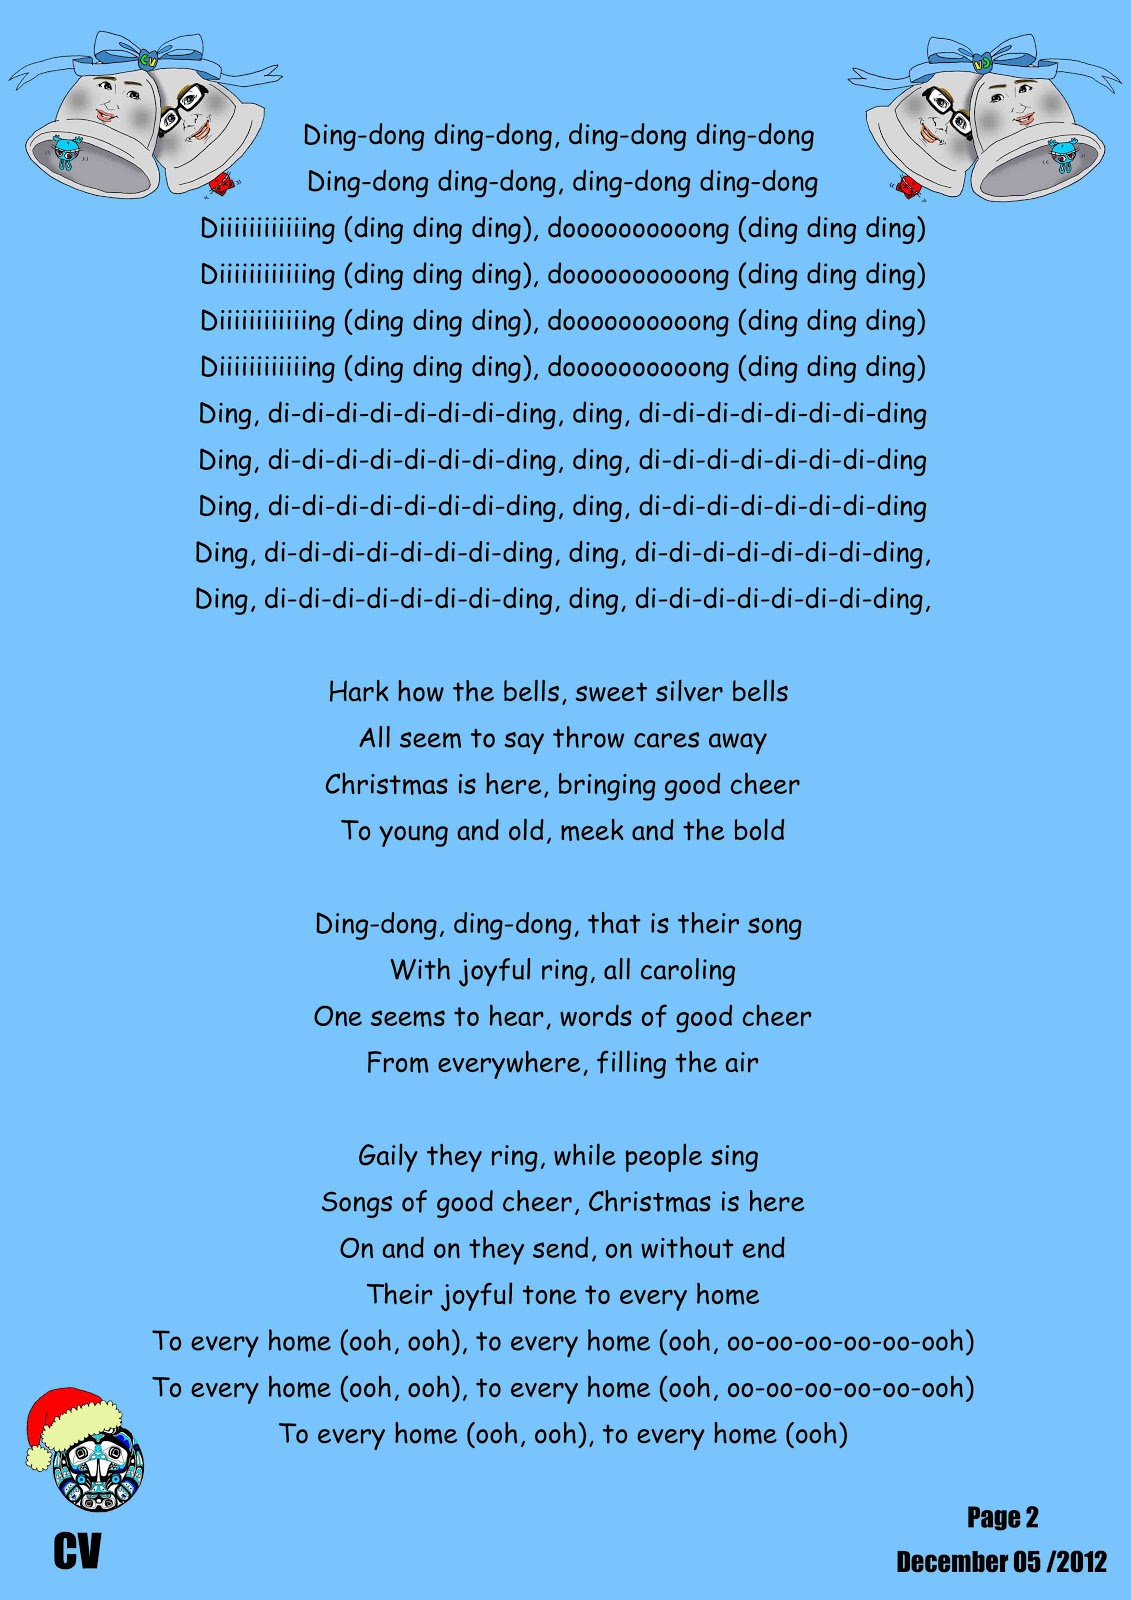 Canadian Voice English School Nagano: Other Christmas Songs...